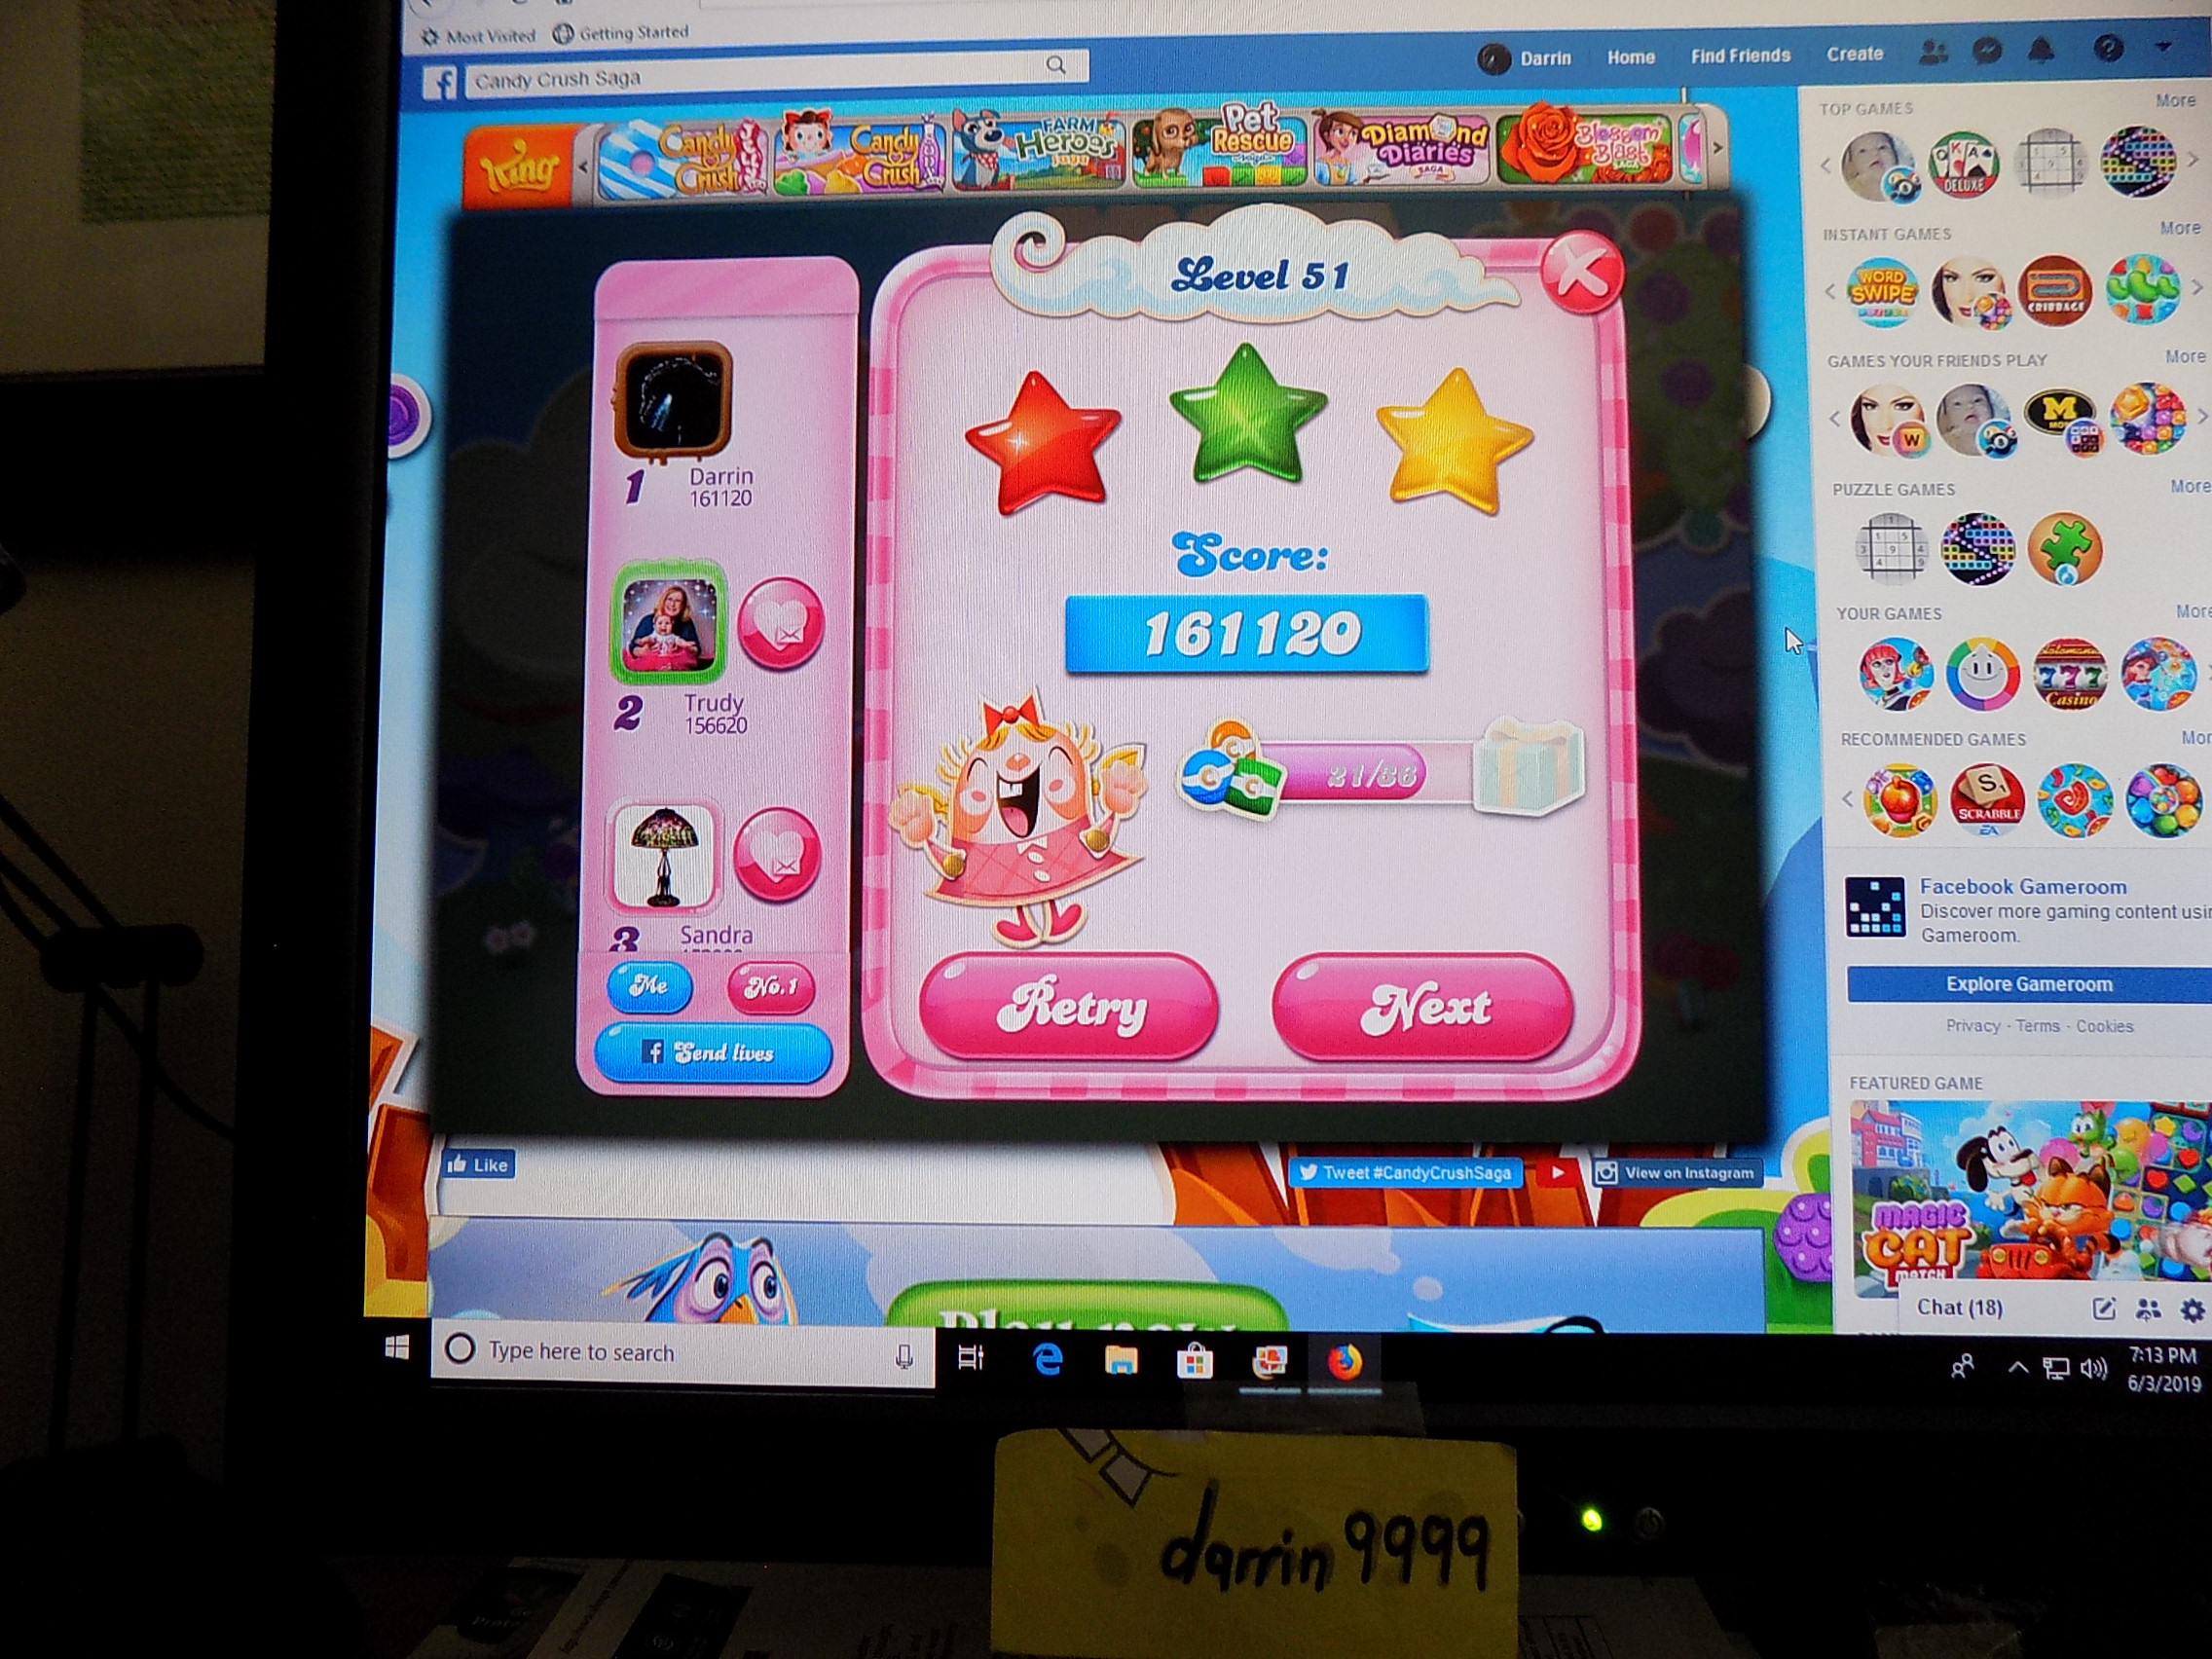 darrin9999: Candy Crush Saga: Level 051 (Web) 161,120 points on 2019-06-12 15:31:51